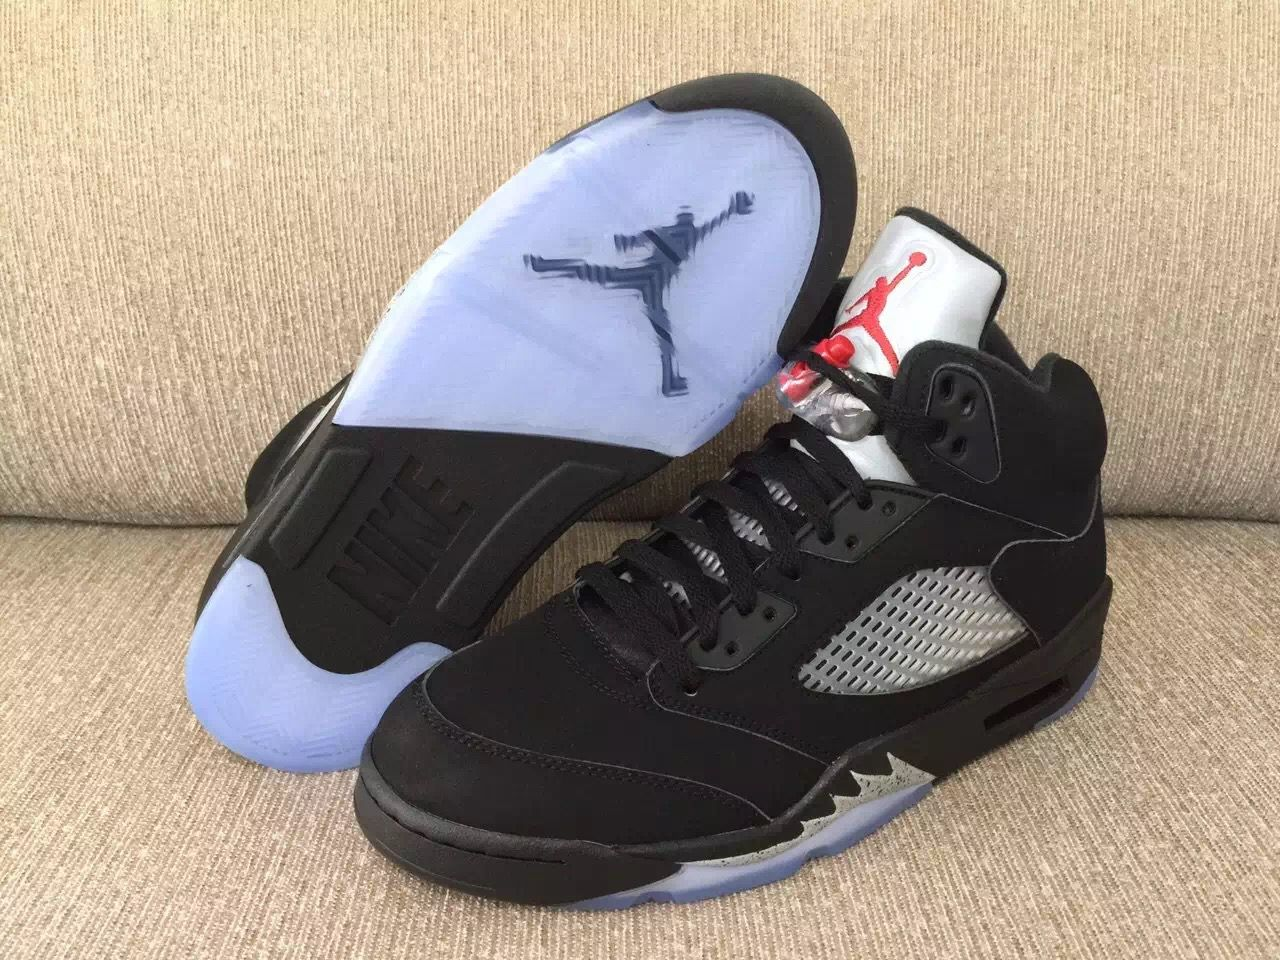 2bf52511eb4 Another Look At The Air Jordan 5 OG 90 Black/Metallic Silver. Authentic Air  Jordan 5 Retro ...